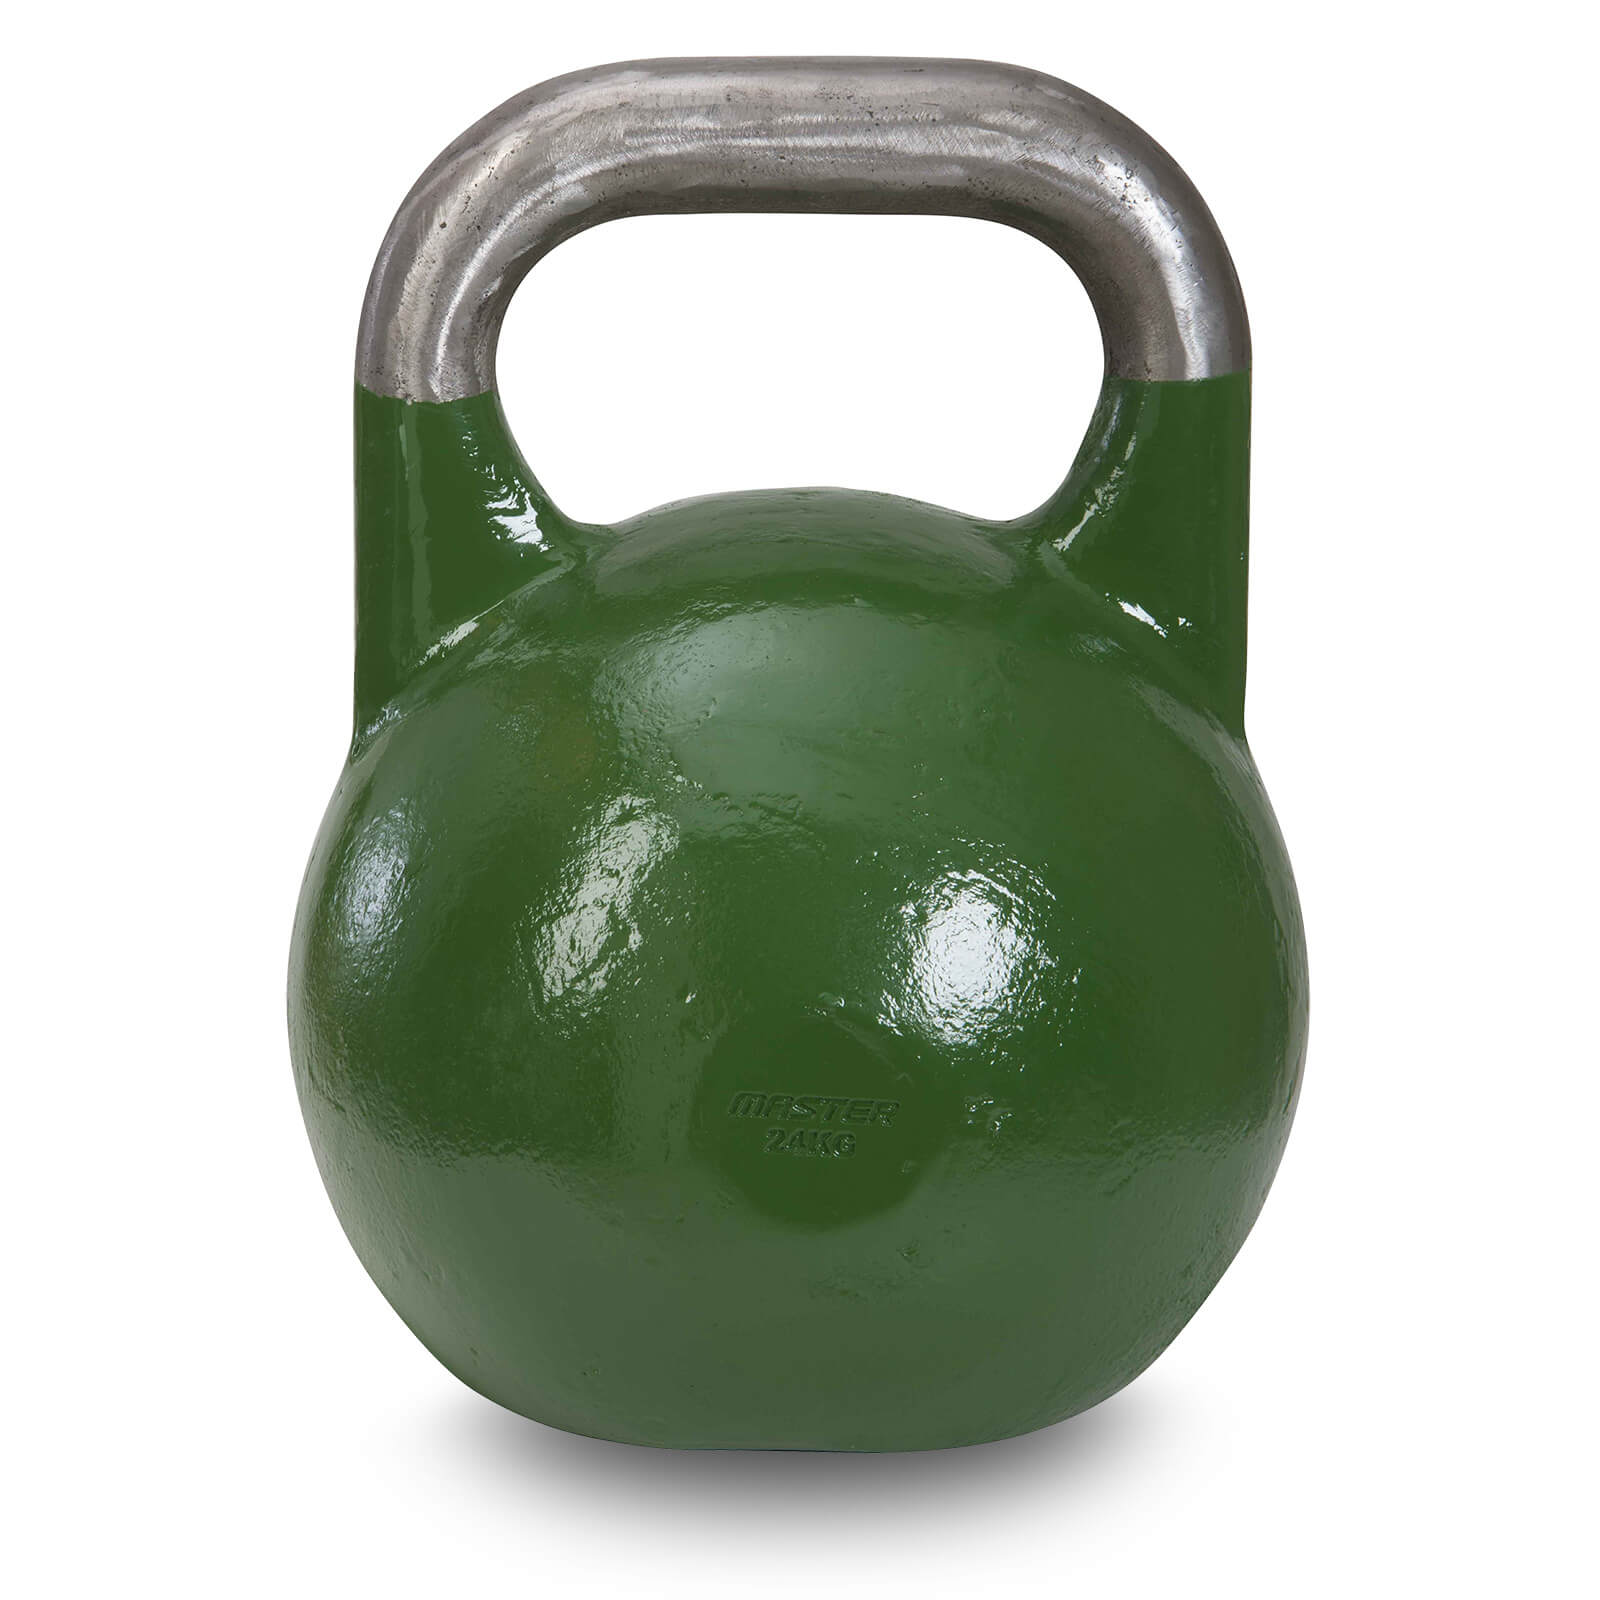 Kettlebell 24kg Professional Competition Grade: Köp Competition Kettlebell, 24 Kg Online Hos